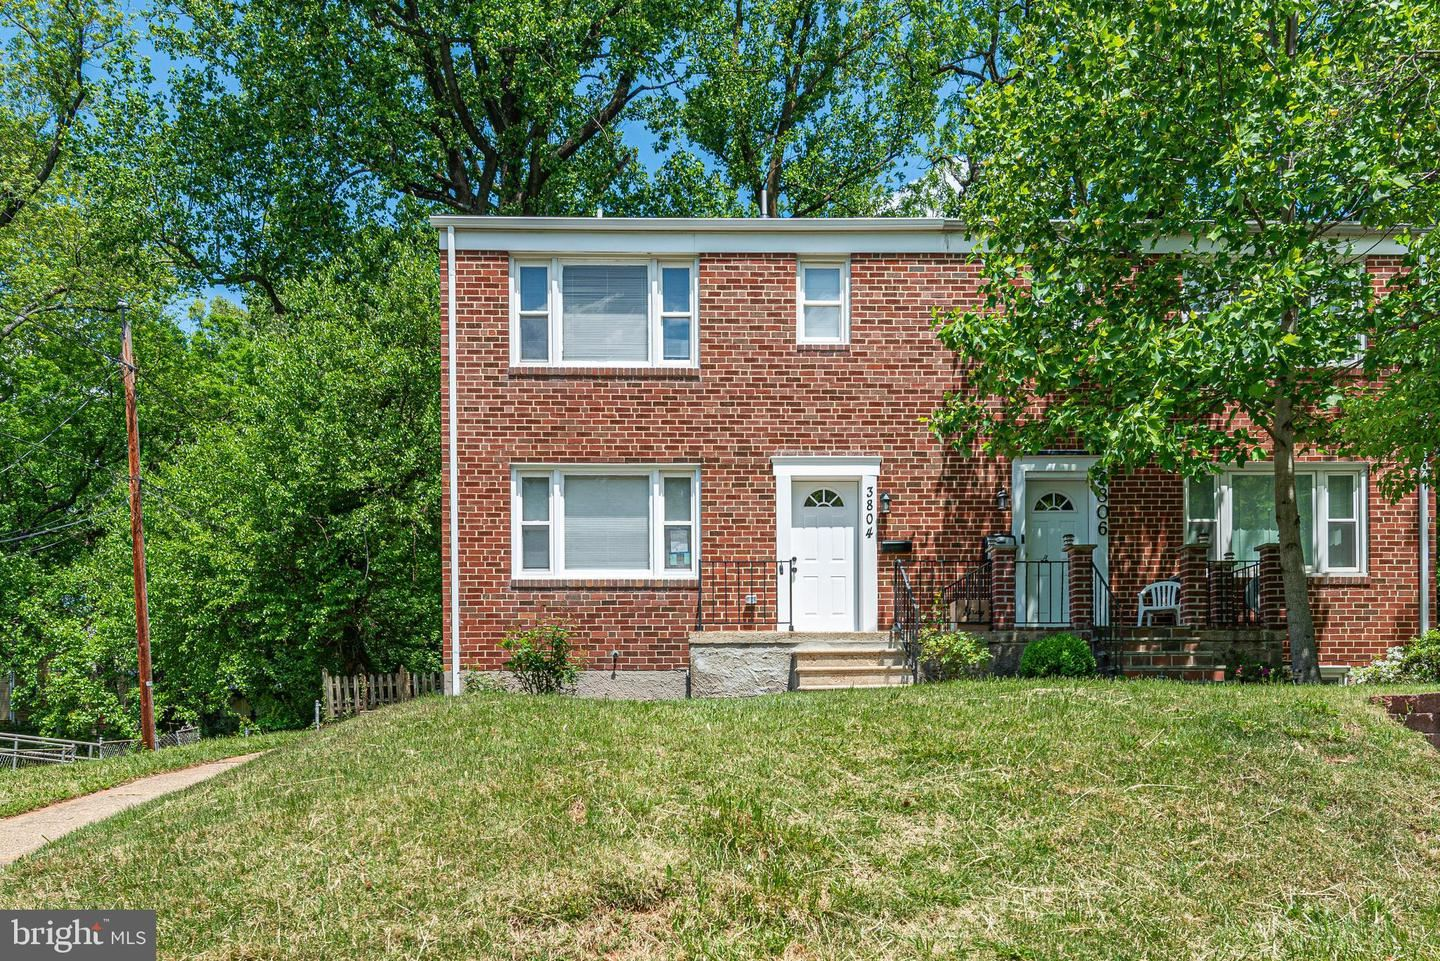 3804 MAYBERRY AVE, Baltimore, MD 21206 - MLS#: MDBA550774